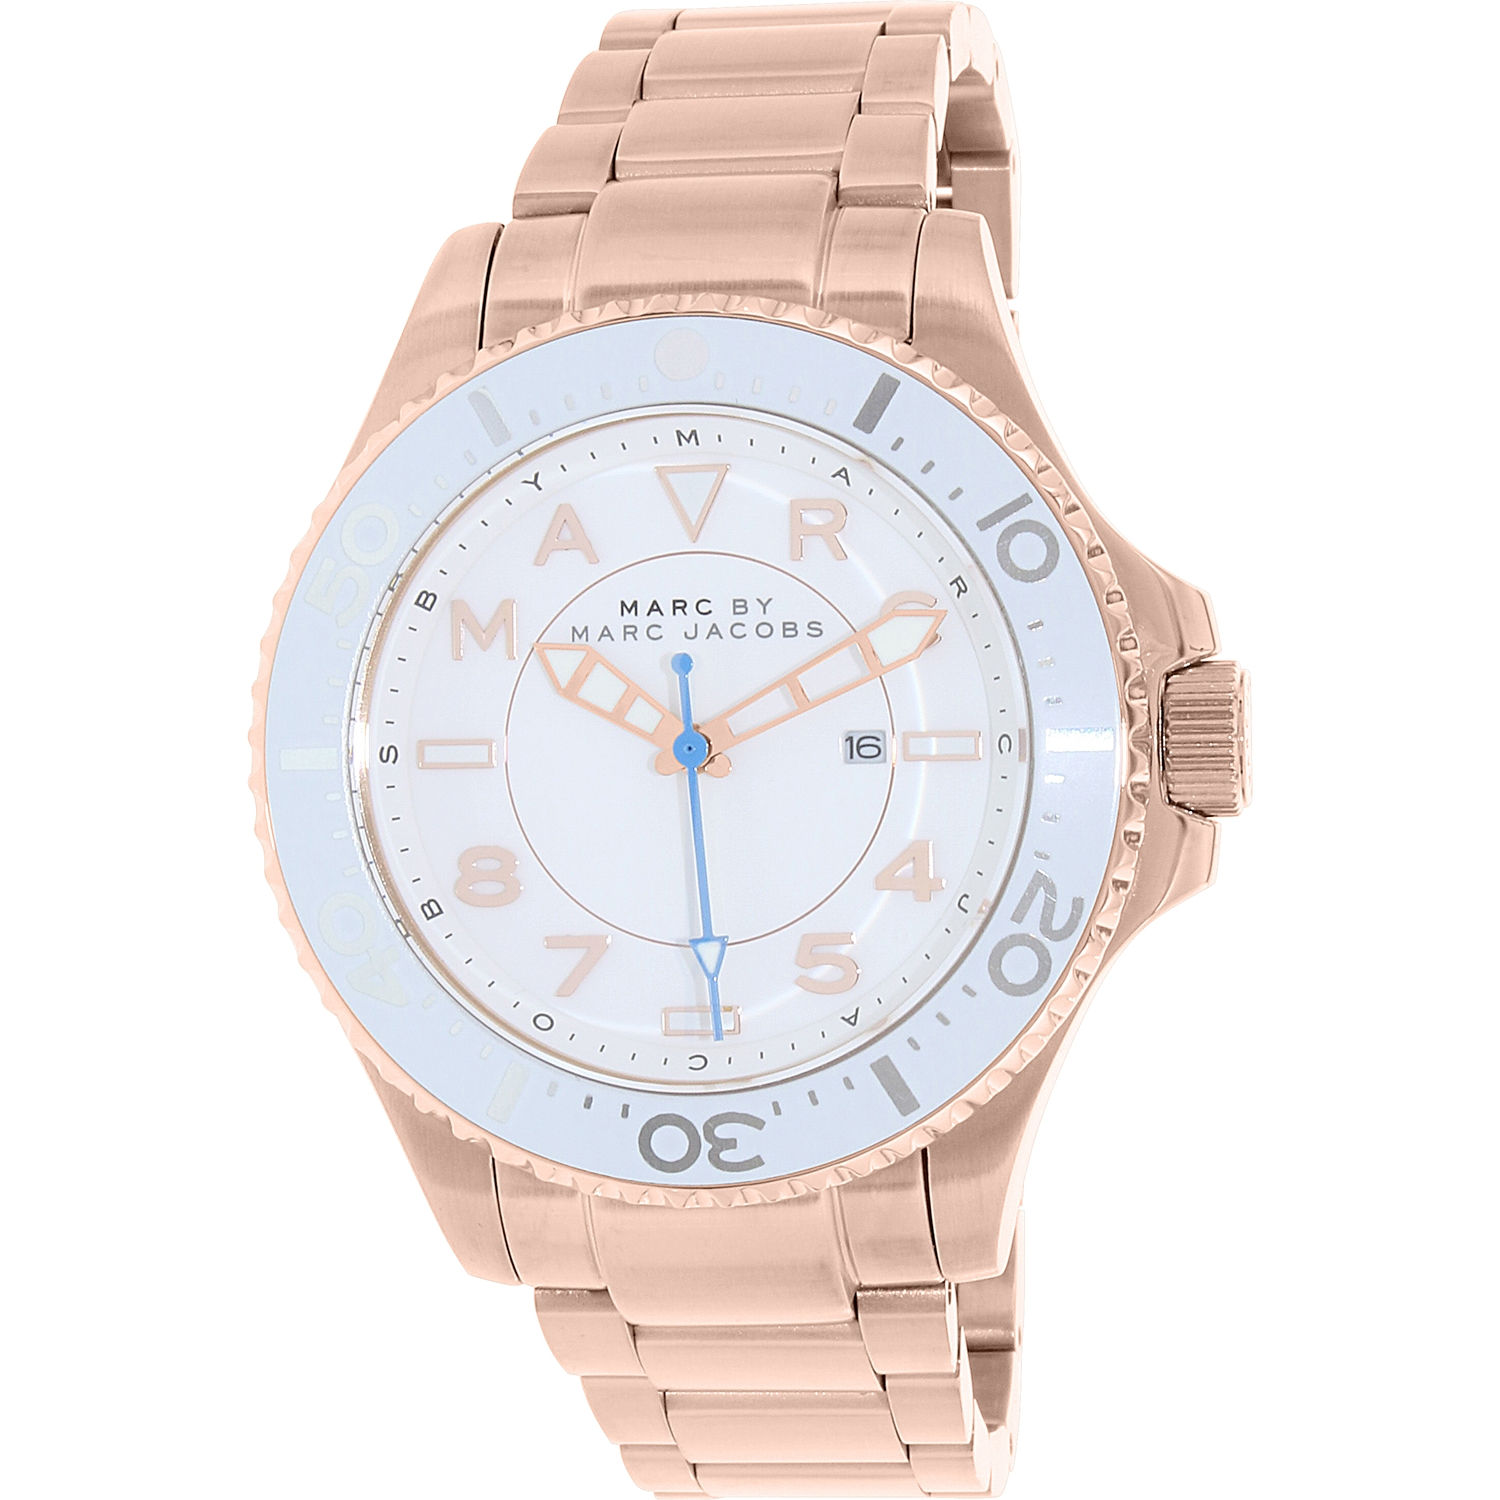 Women's Dizz MBM3409 Rose Gold Stainless-Steel Quartz Watch